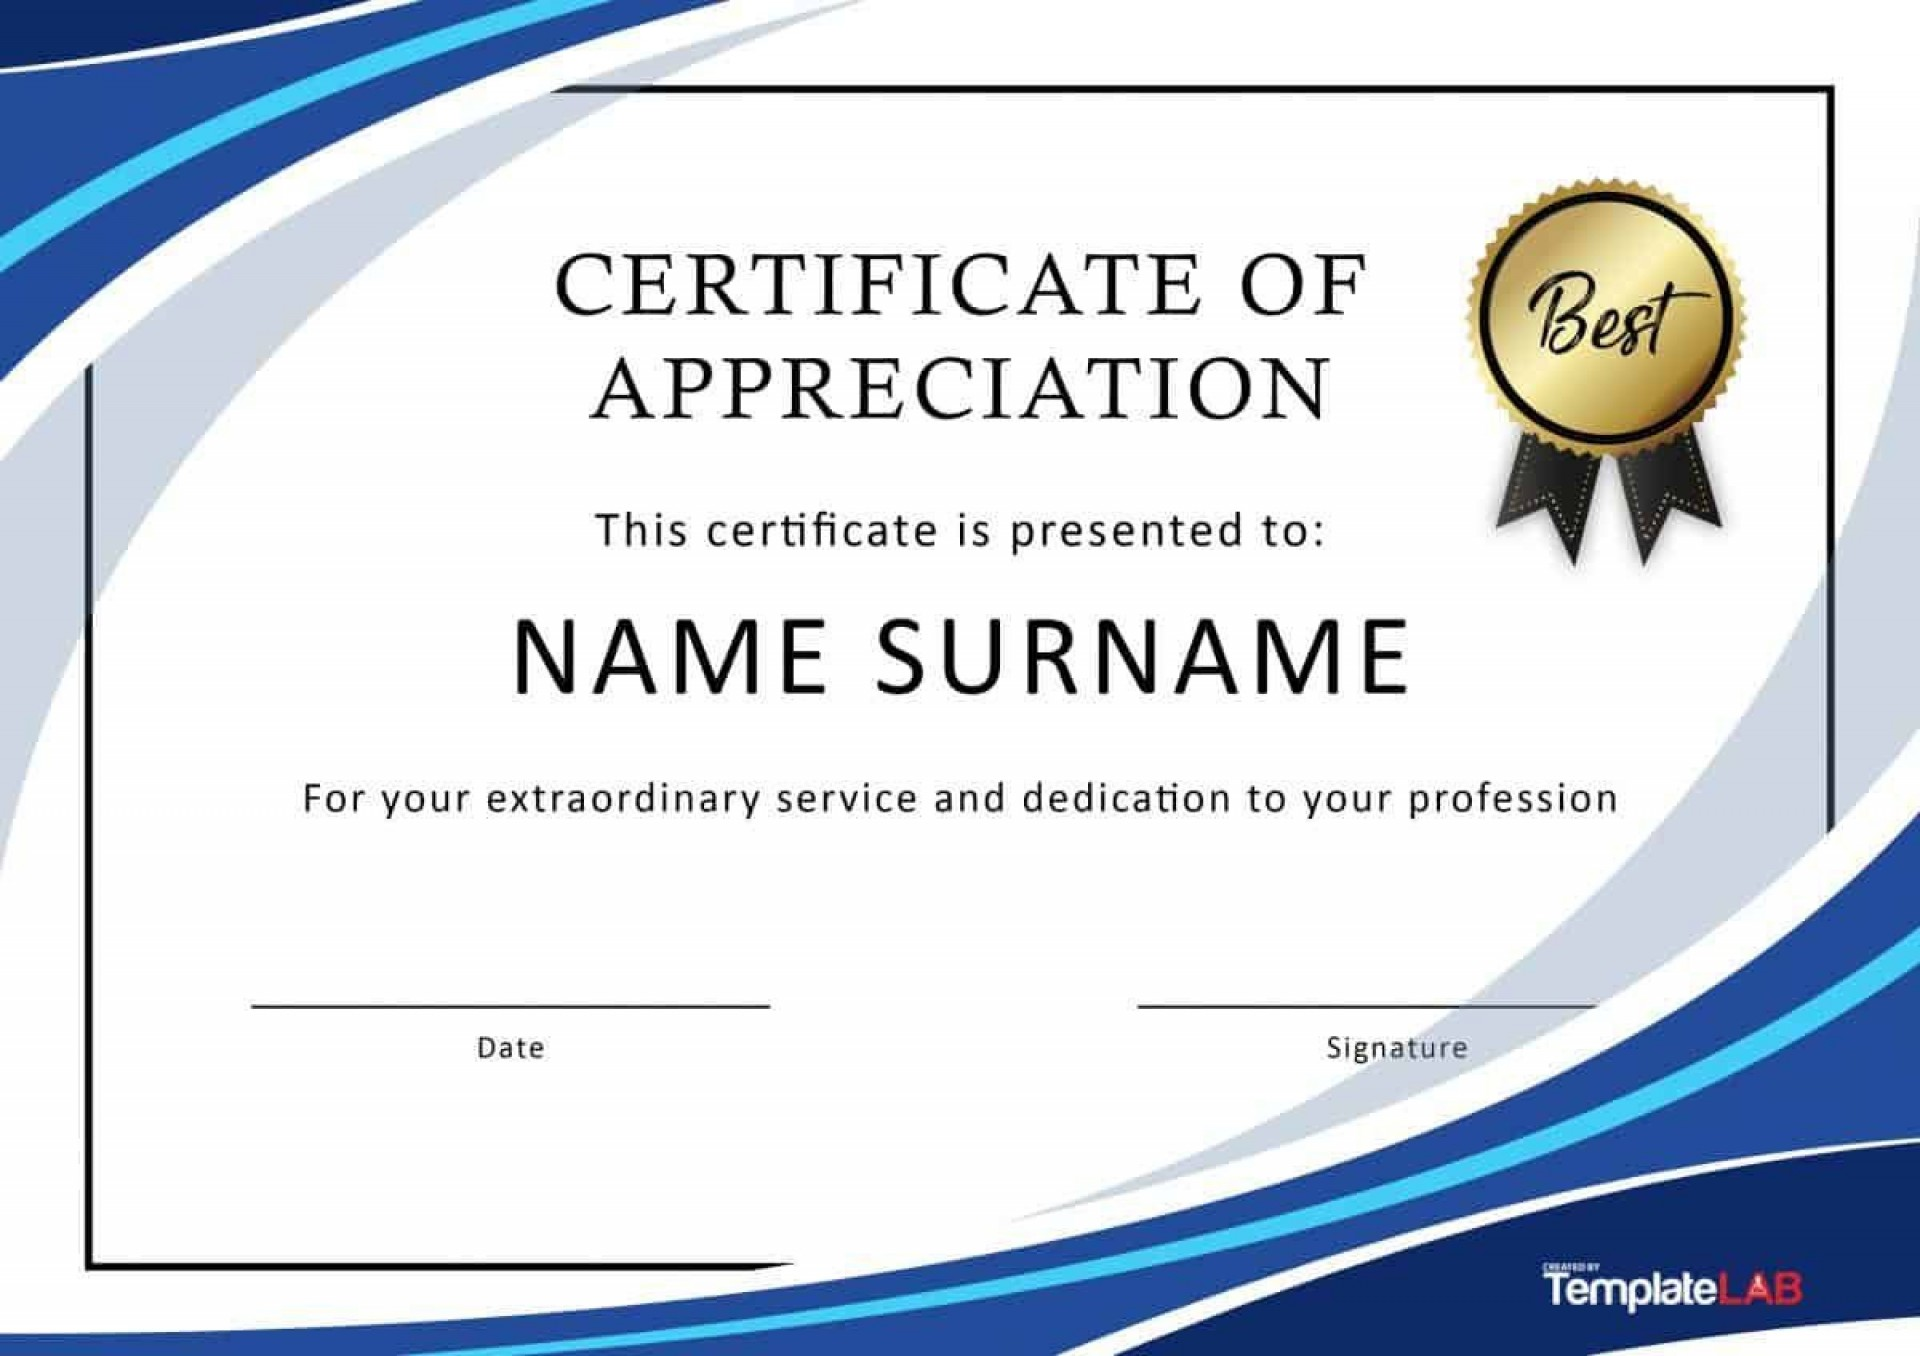 002 Awful Free Template For Certificate Design  Certificates Online Of Completion Attendance Printable Participation1920